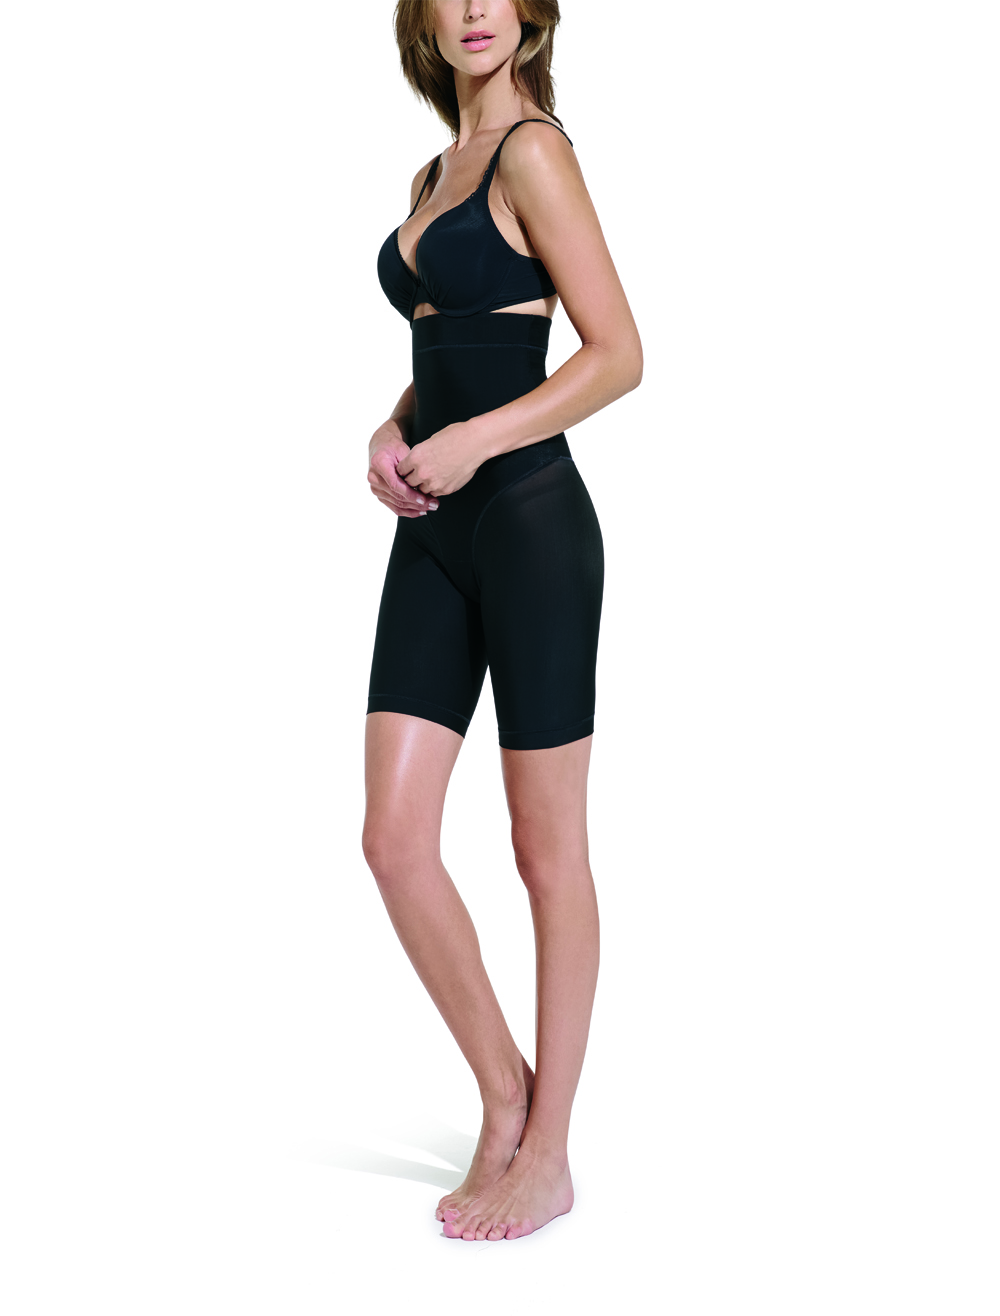 Sleek Microfibre Firming High Waist Thigh Slimmer